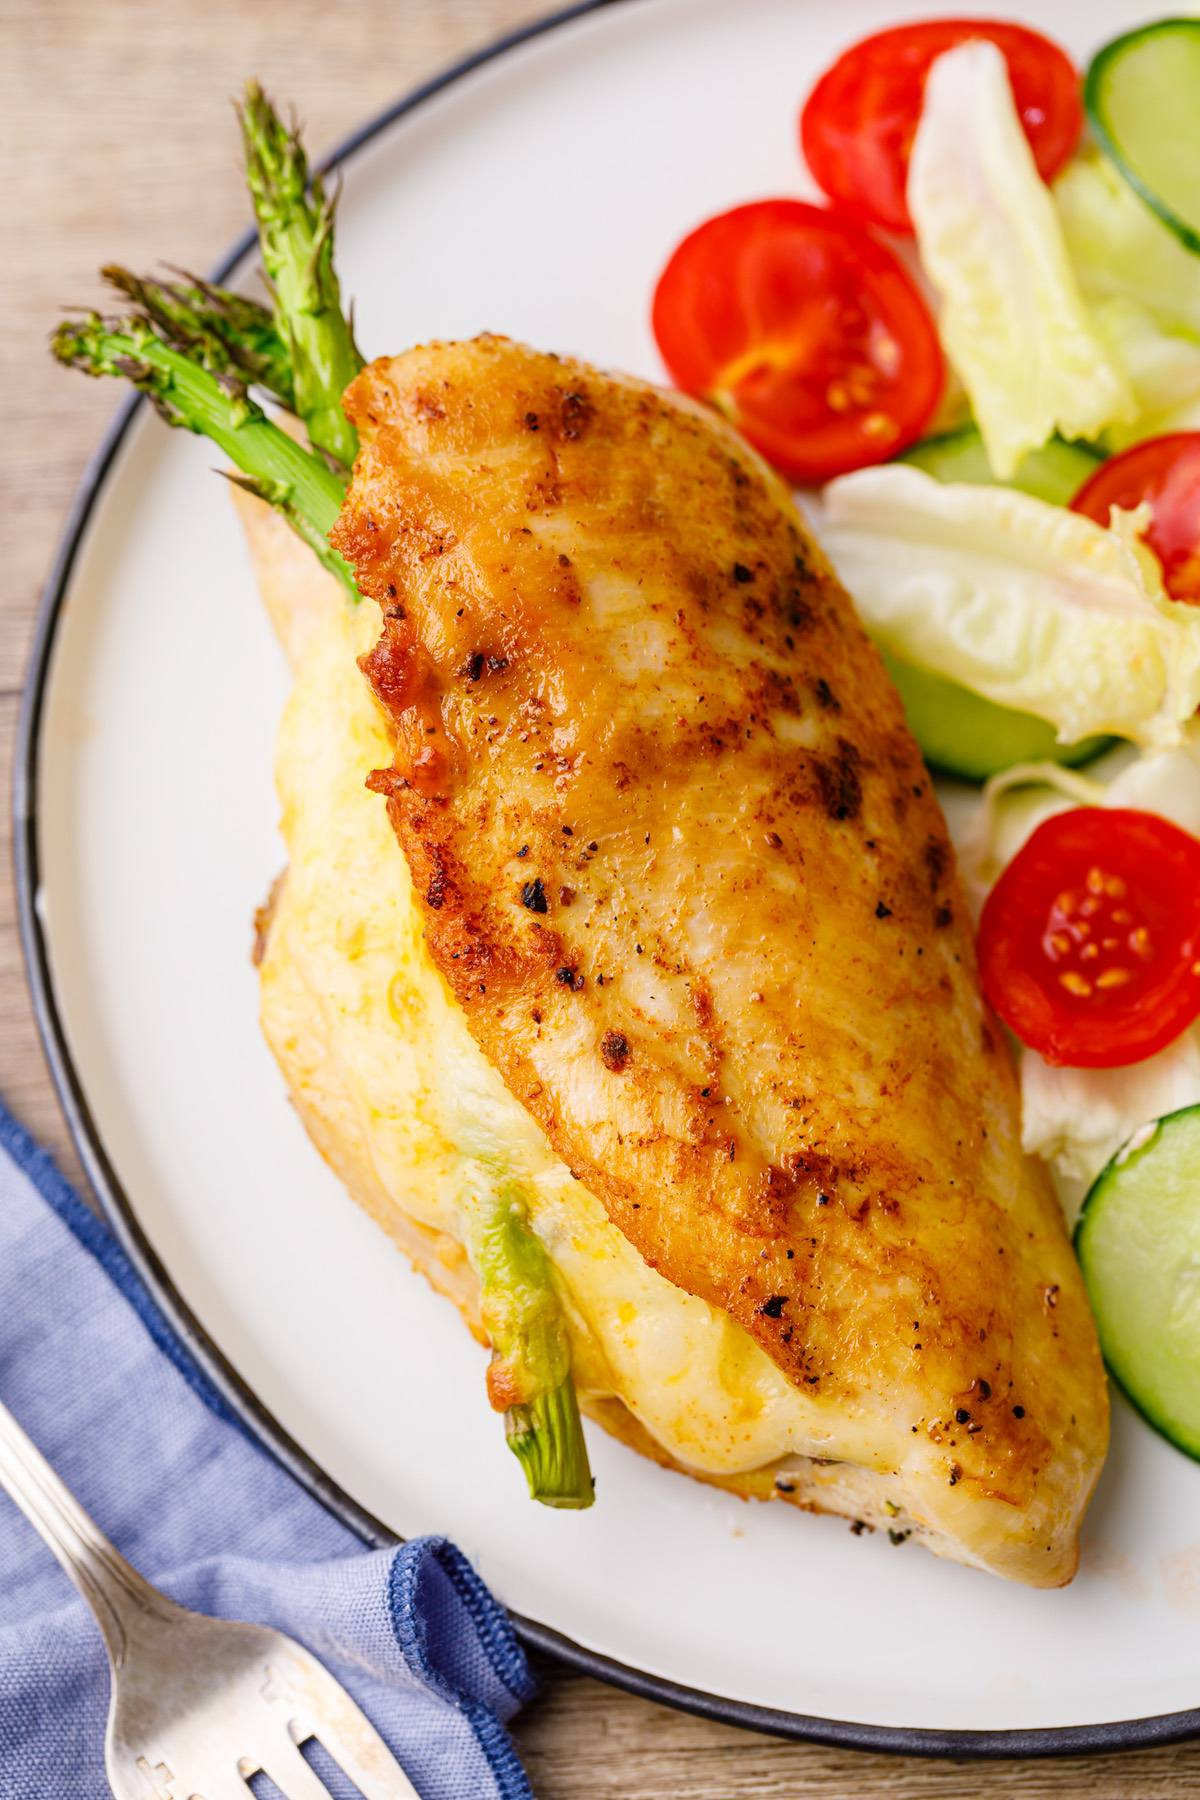 Keto Asparagus Stuffed Chicken Breast